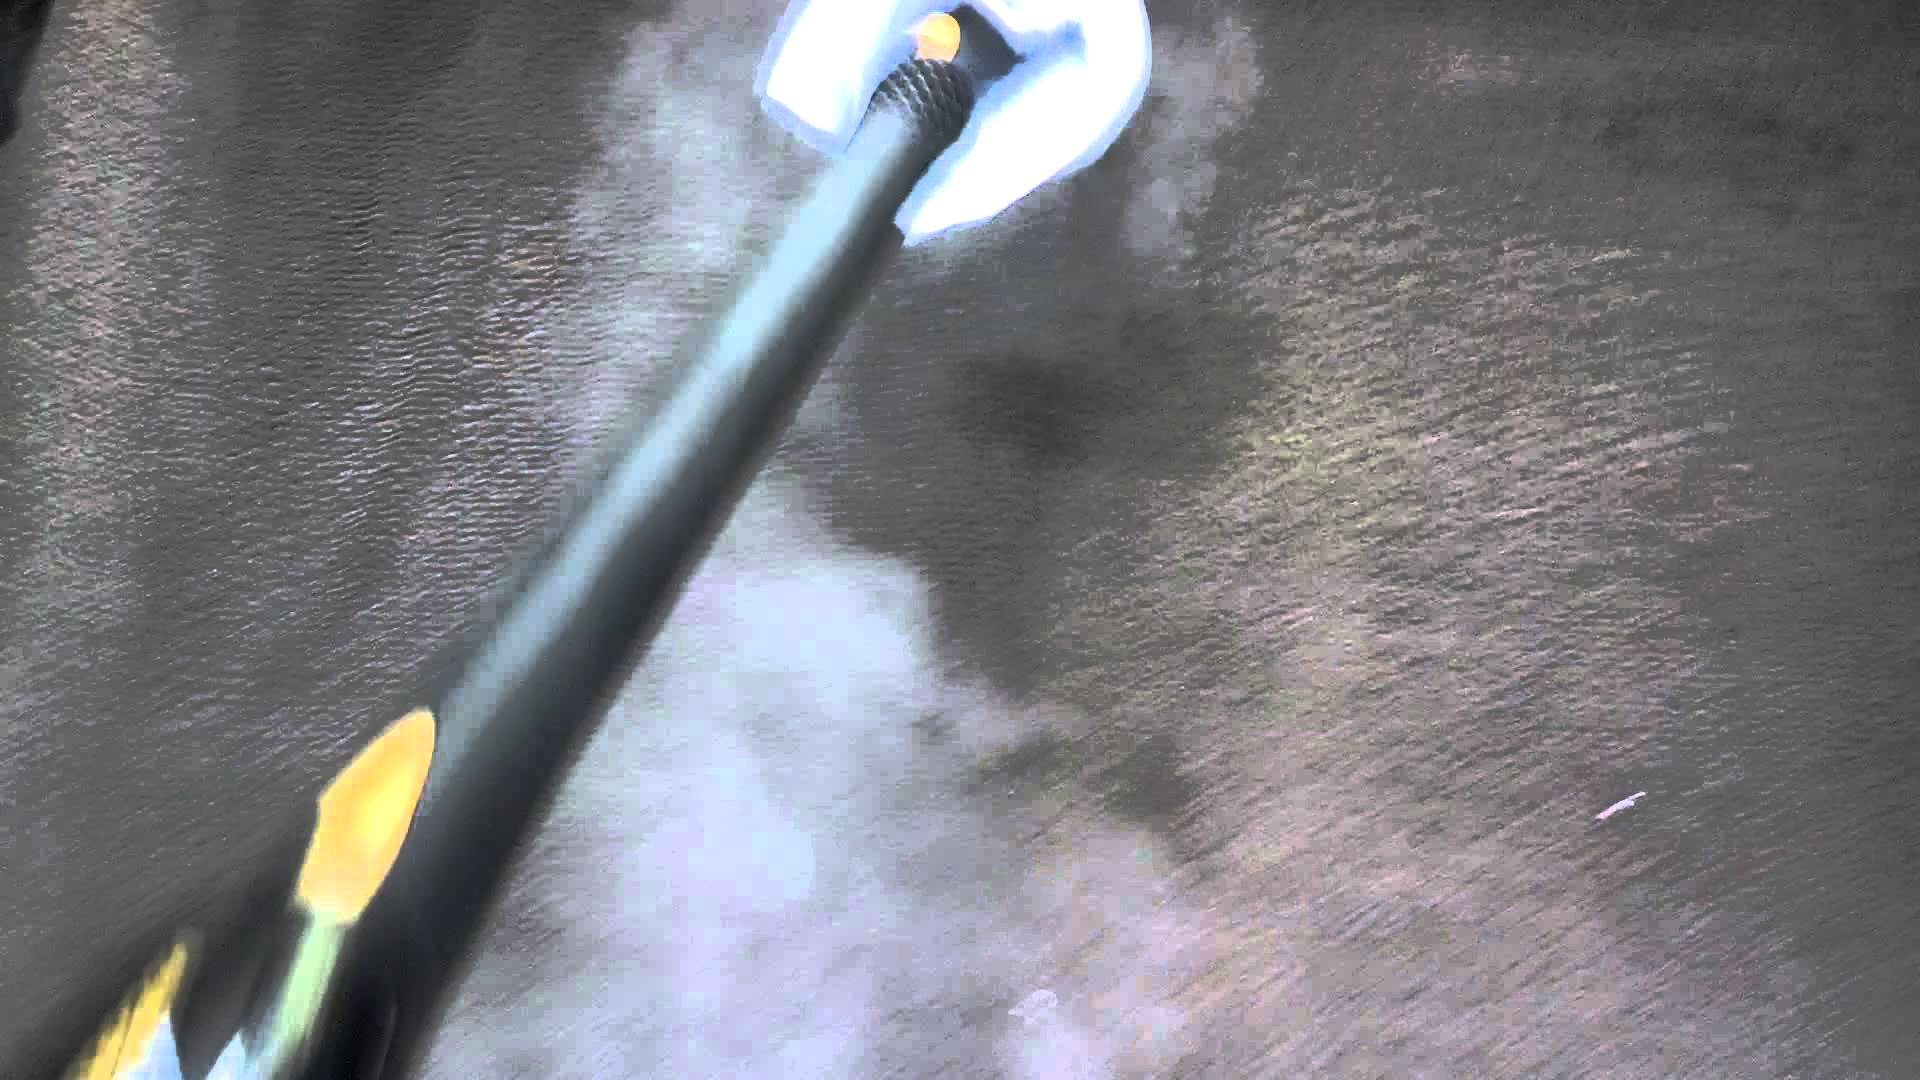 McCulloch 1385 Steam Cleaner – Visual Pro Detailing